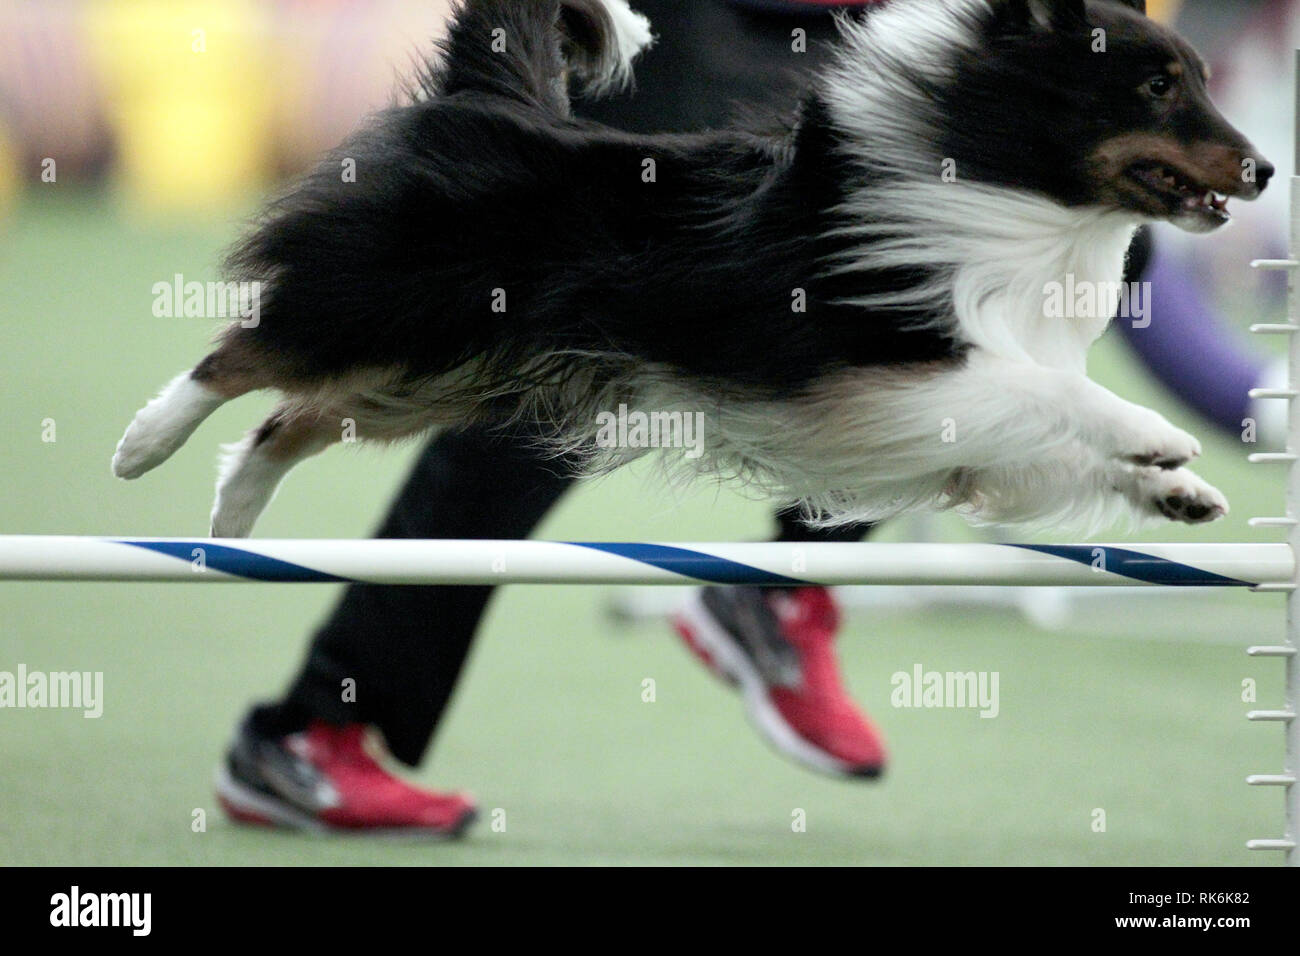 New York, USA. 9th Feb 2019. Boss, A Shetland Sheepdog, competing in the preliminaries of the Westminster Kennel Club's Master's Agility Championship. Credit: Adam Stoltman/Alamy Live News Stock Photo